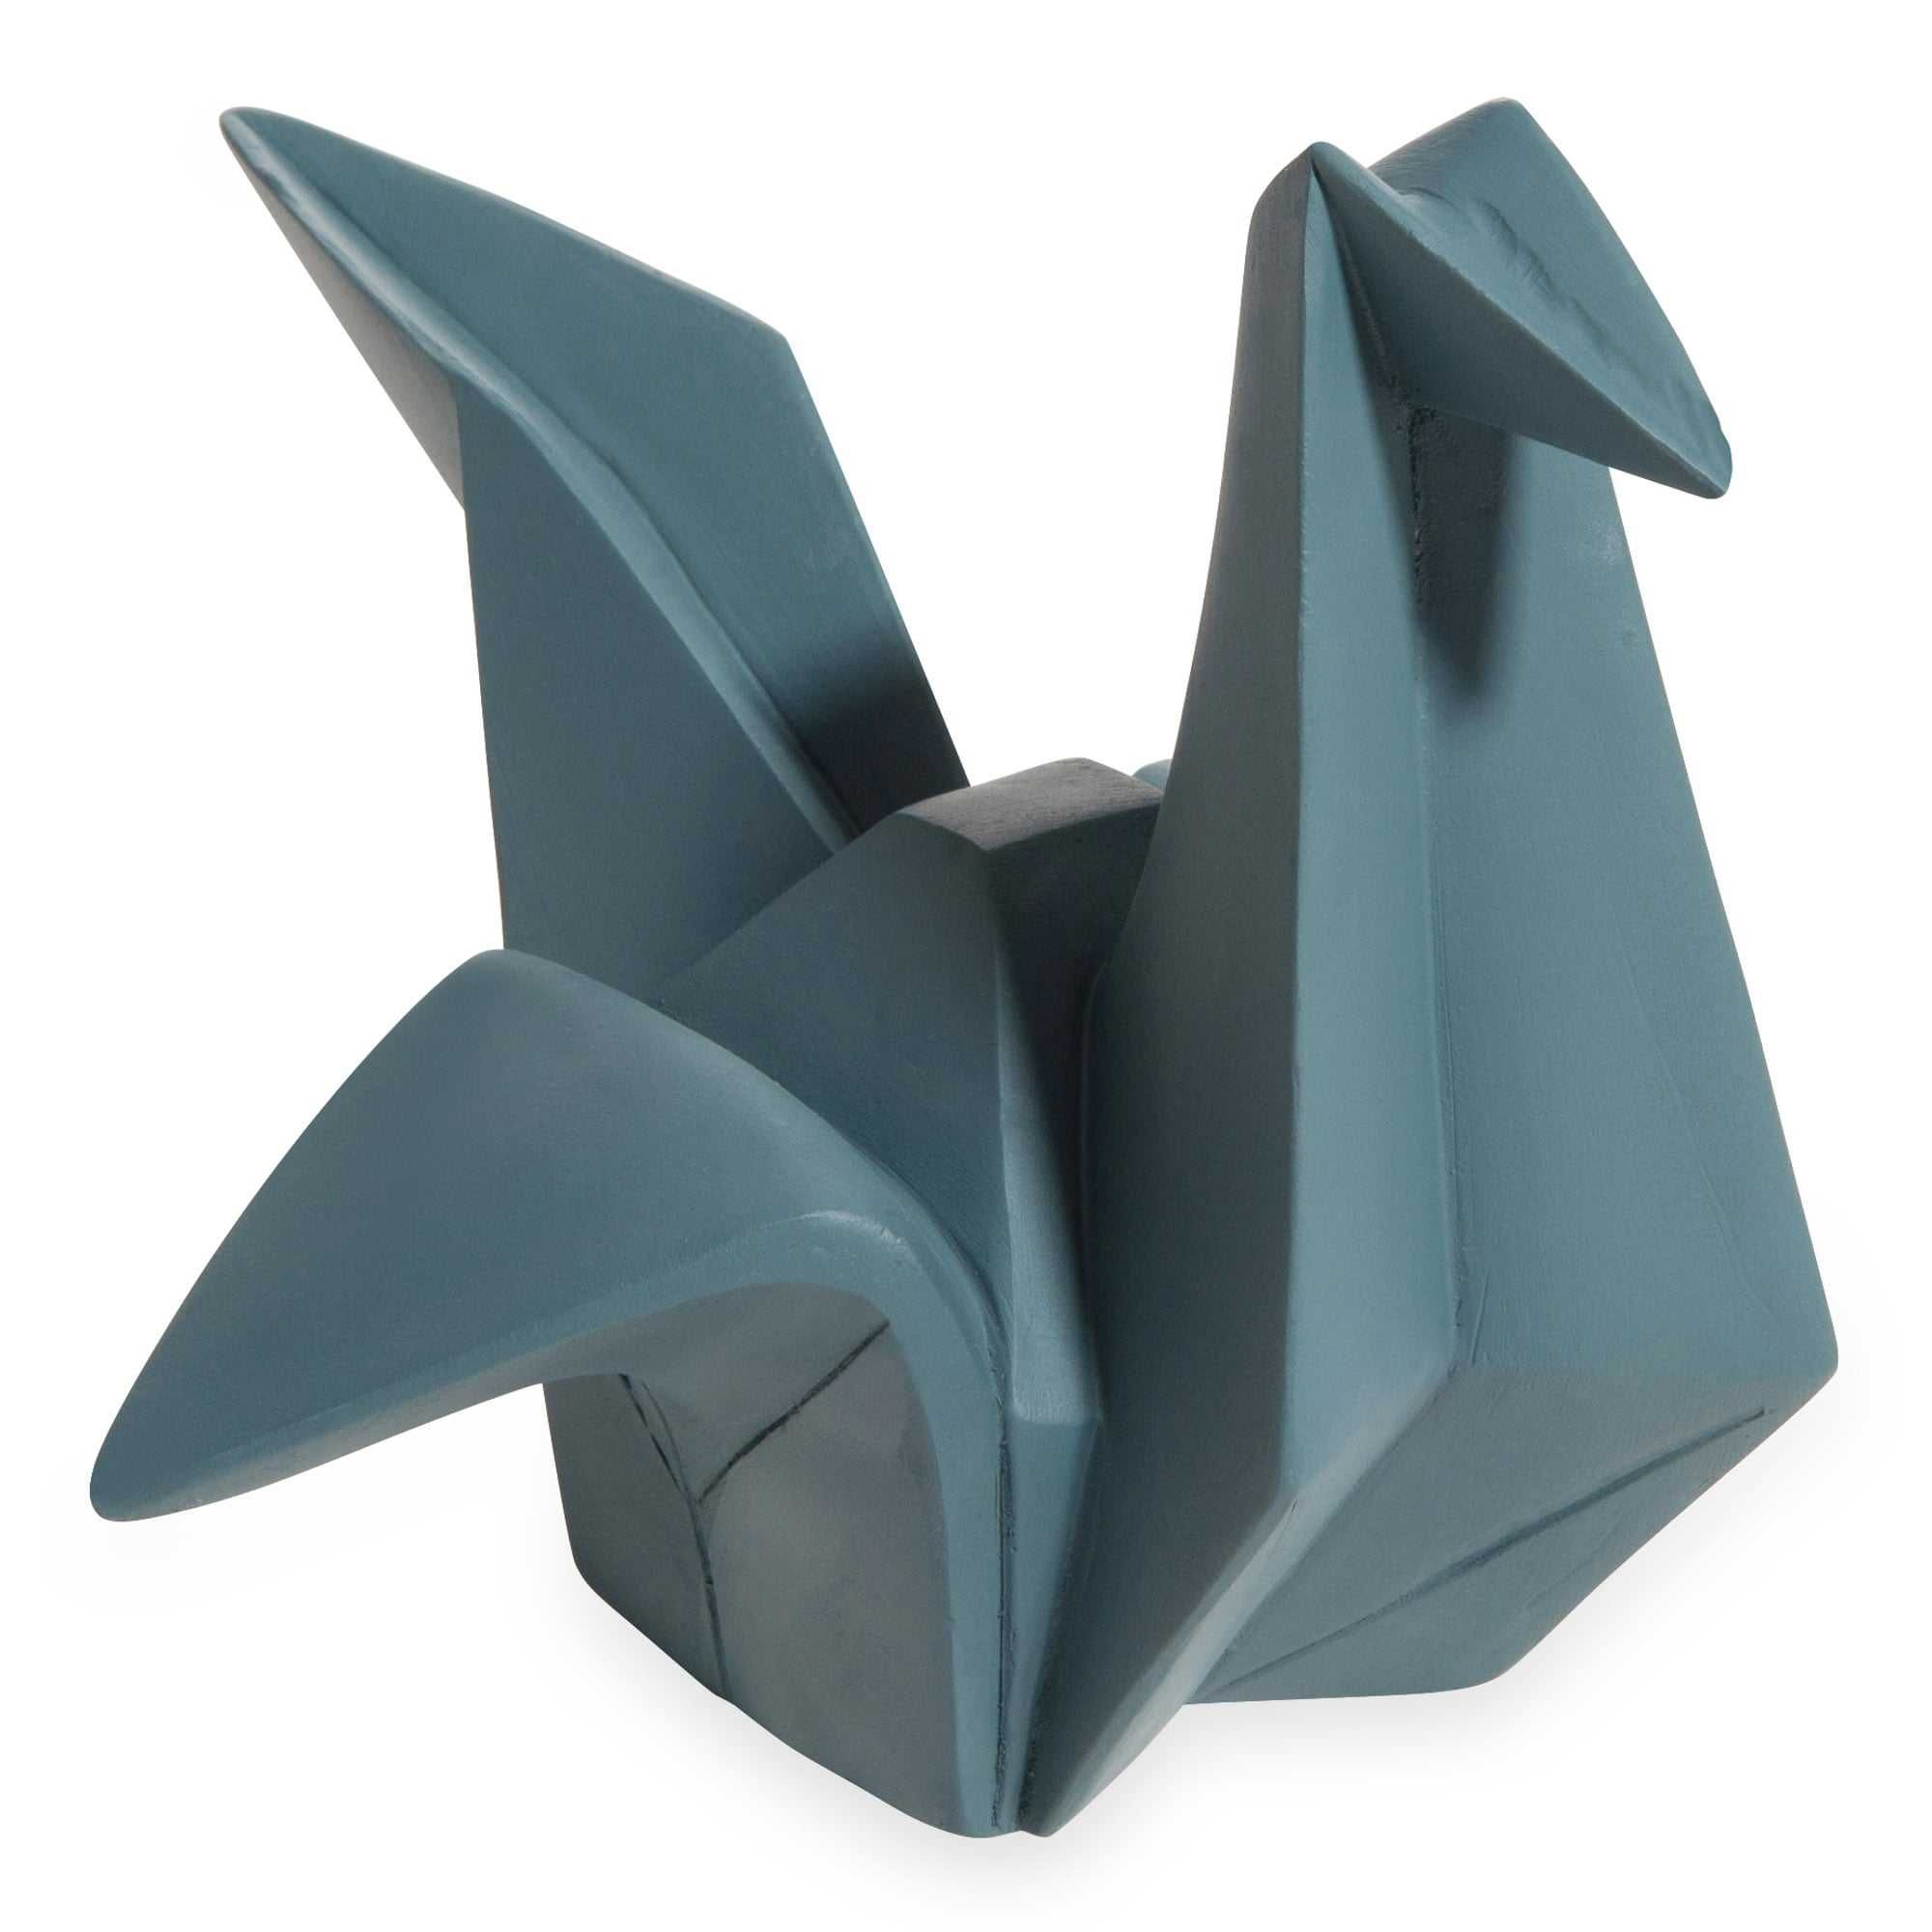 statuette grue bleu marine origami deco st brevin en 2019 pinterest decoration. Black Bedroom Furniture Sets. Home Design Ideas